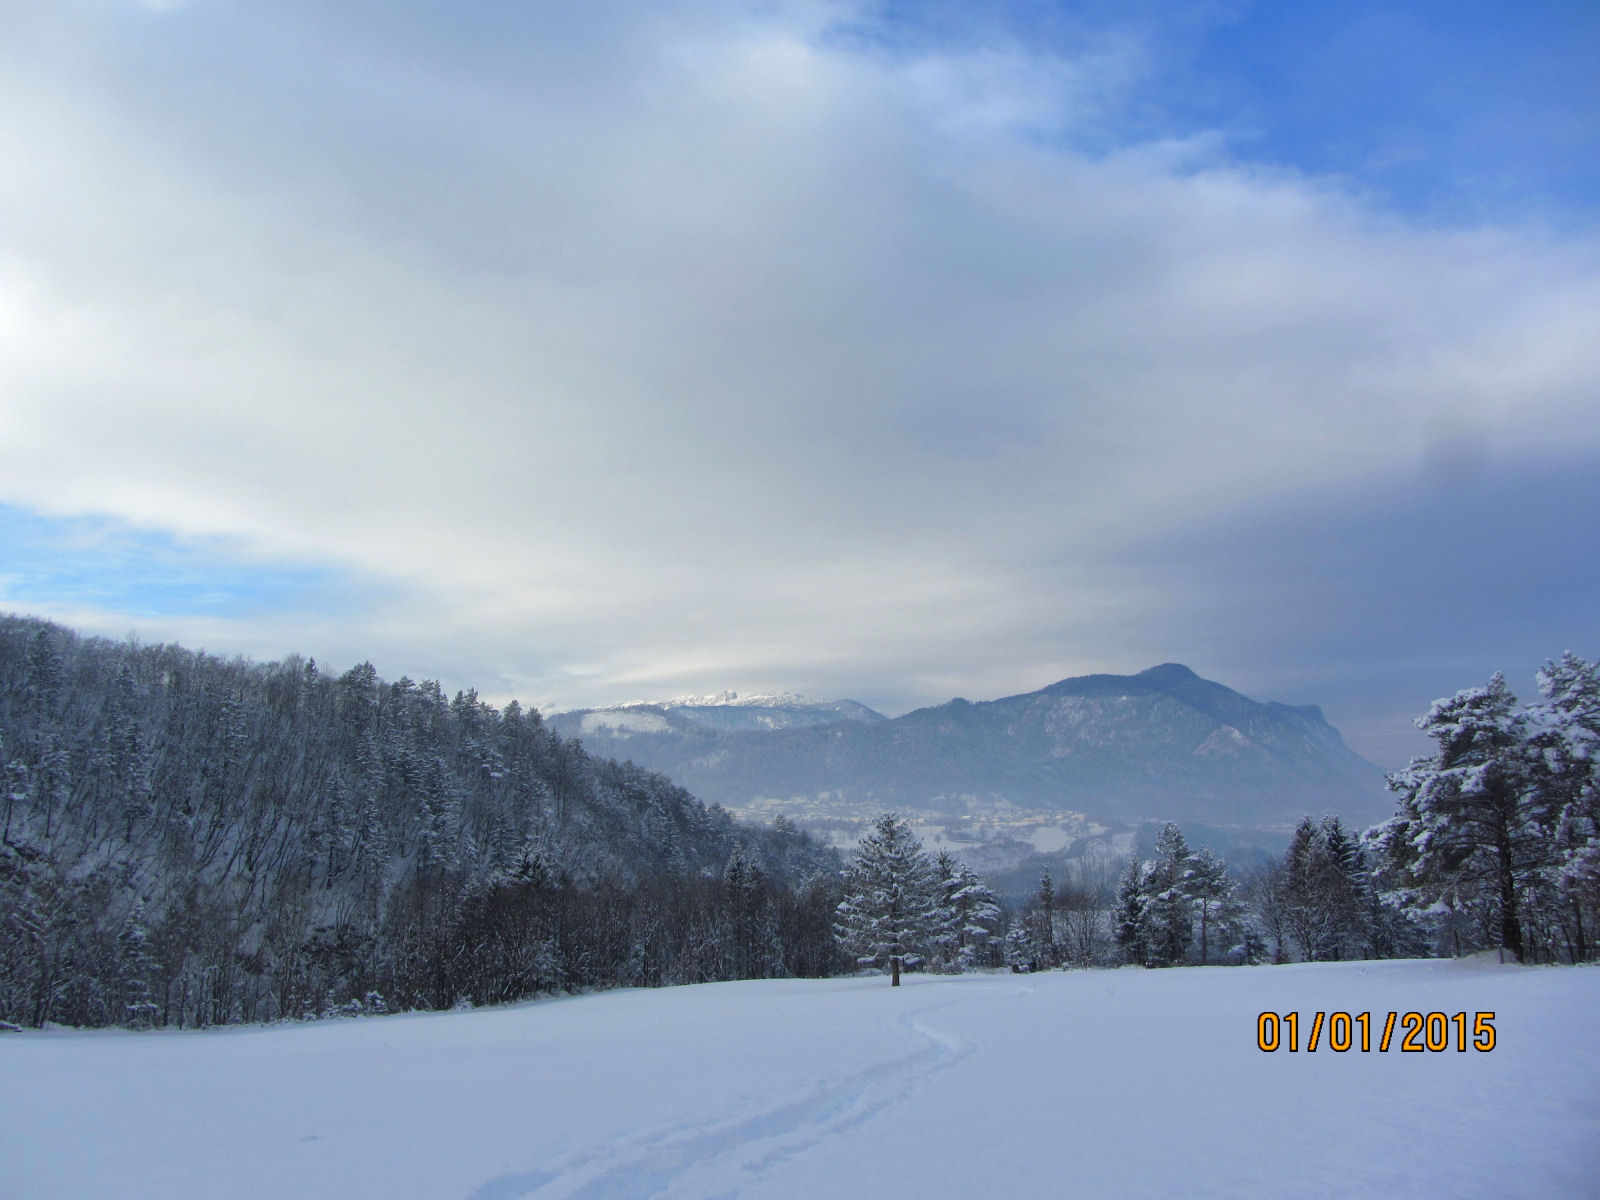 Snow covered landscape of the Gorenjska region of Slovenia